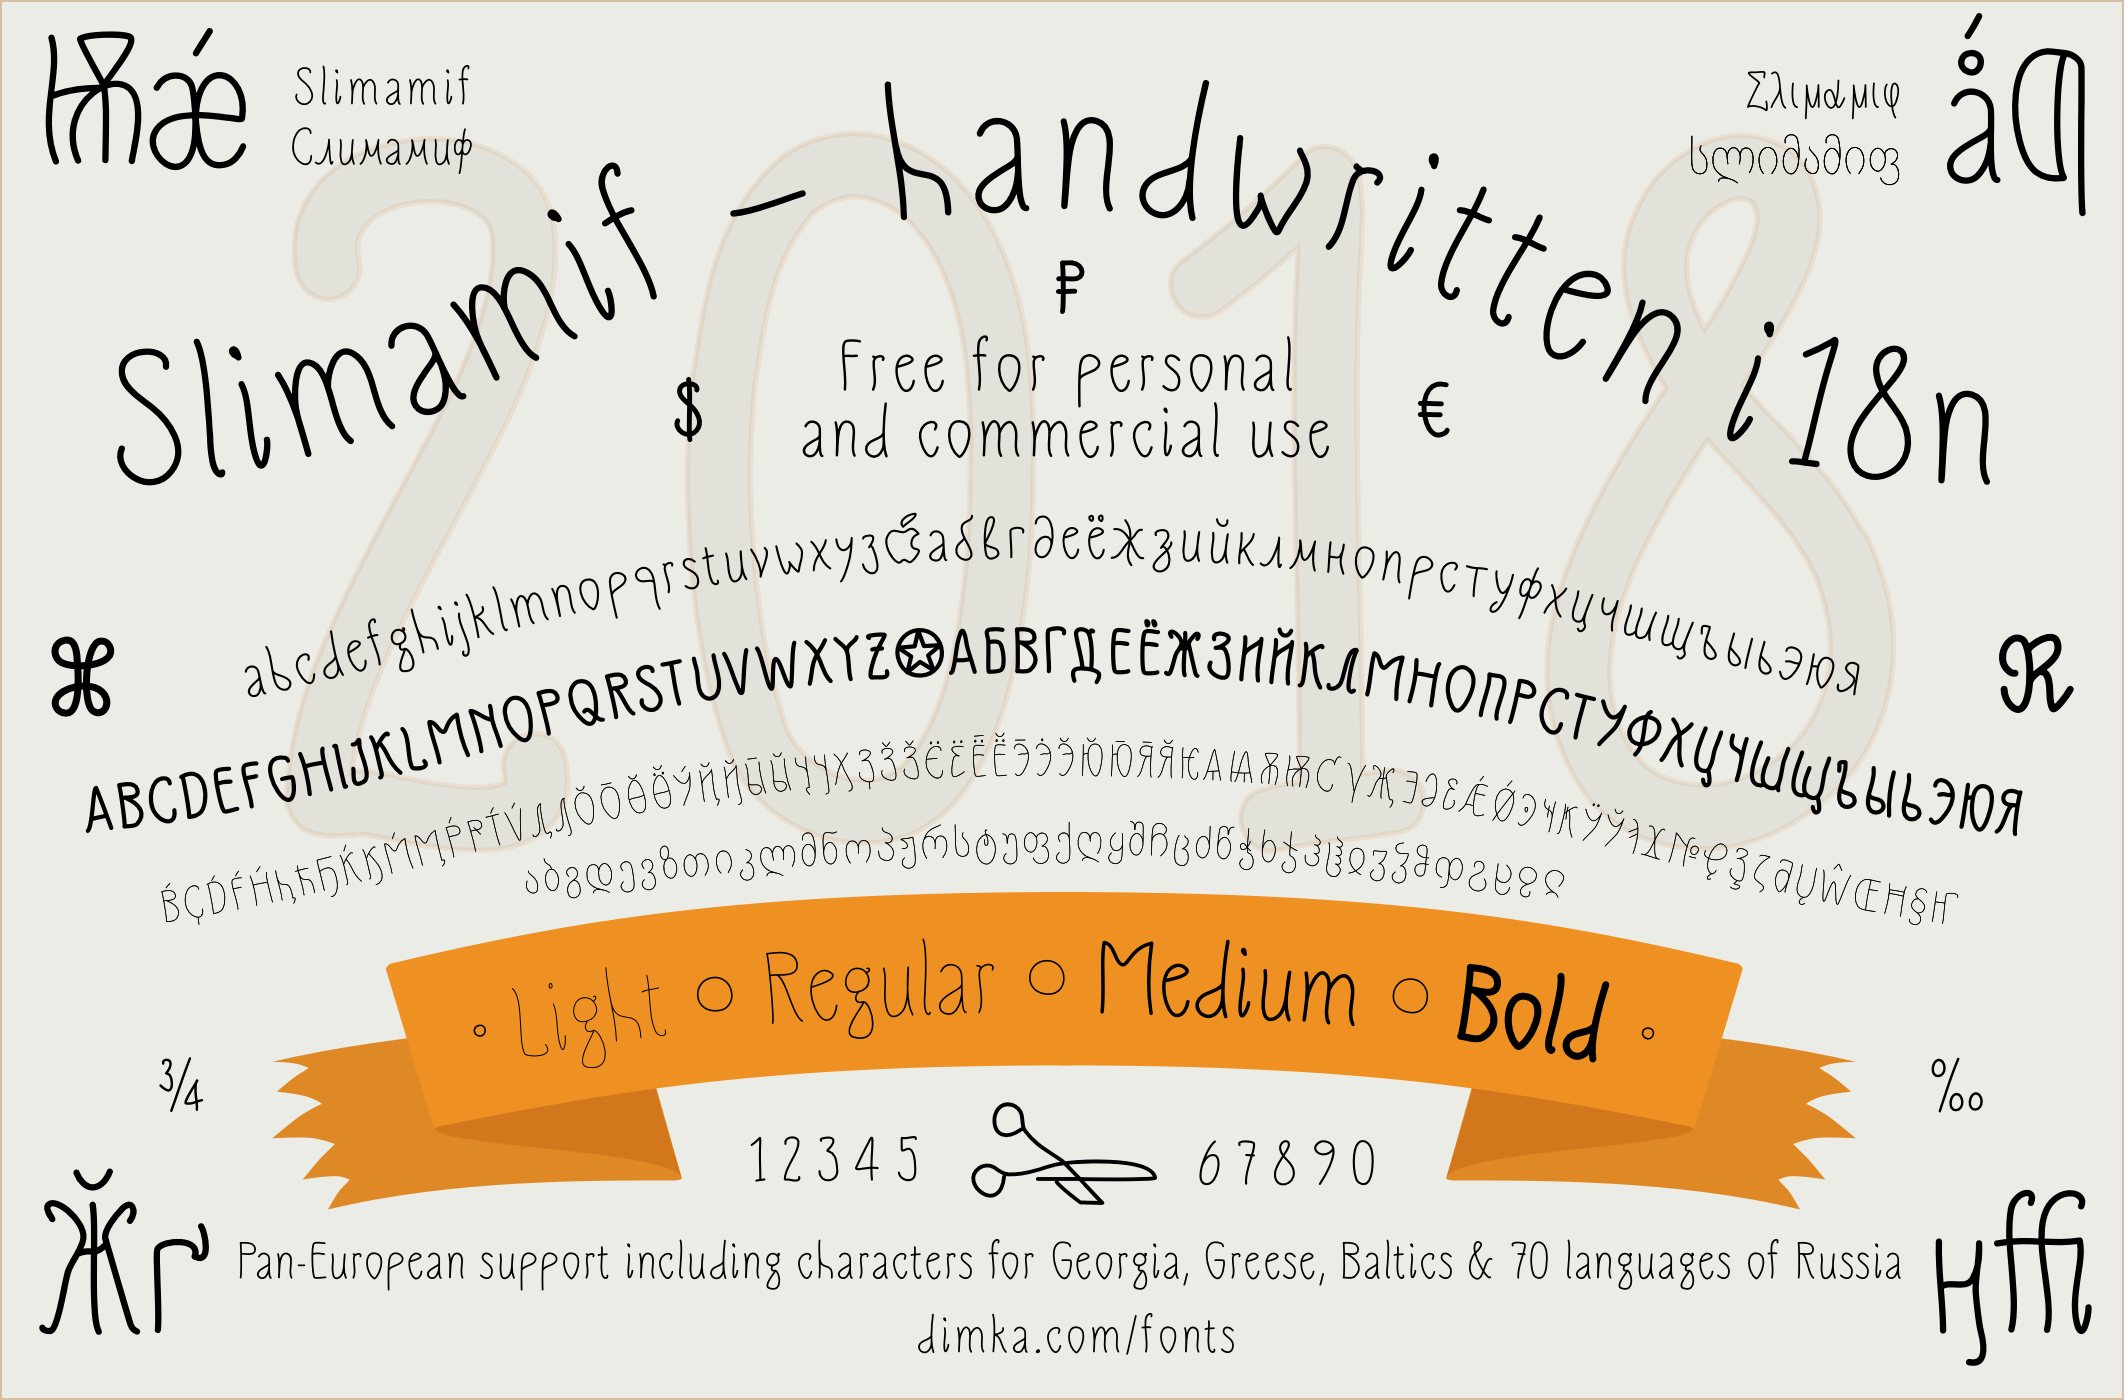 Slimamif Font by Dimka